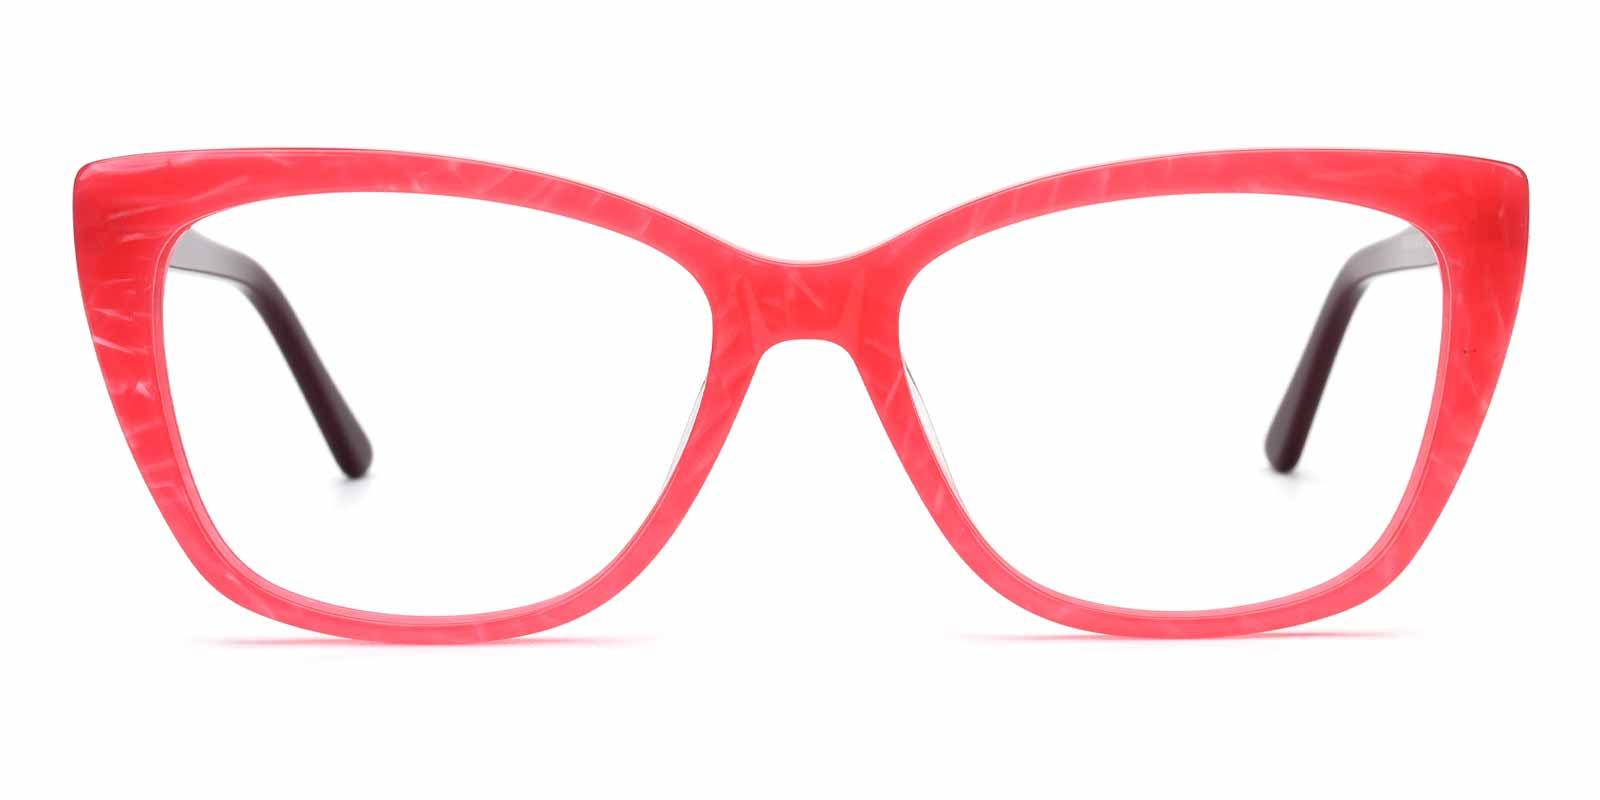 Kiko-Purple-Cat-Acetate-Eyeglasses-additional2